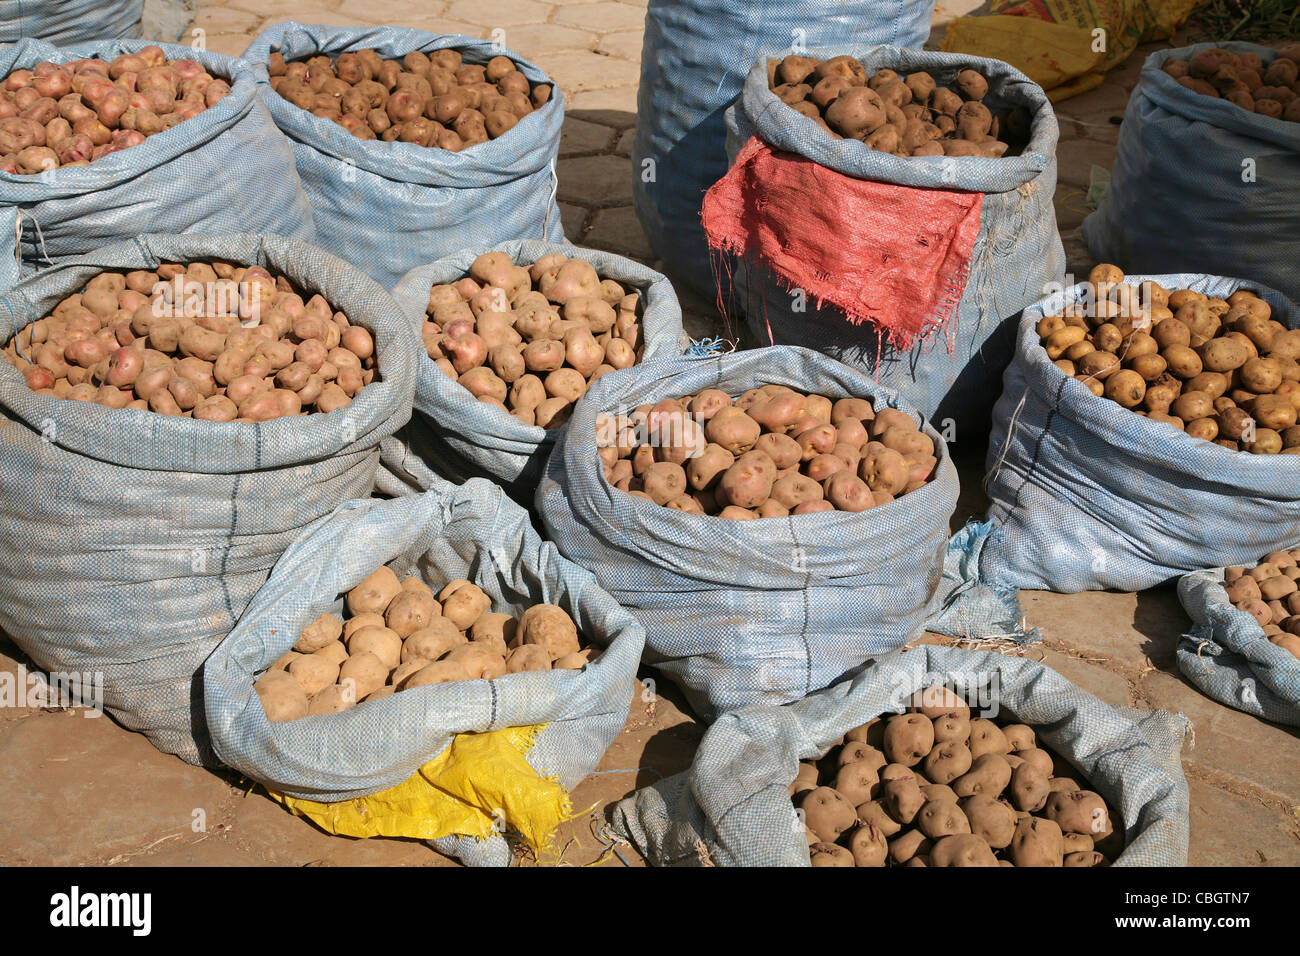 Potatoes for sale in large bags on market in Challapata, Altiplano, Bolivia - Stock Image